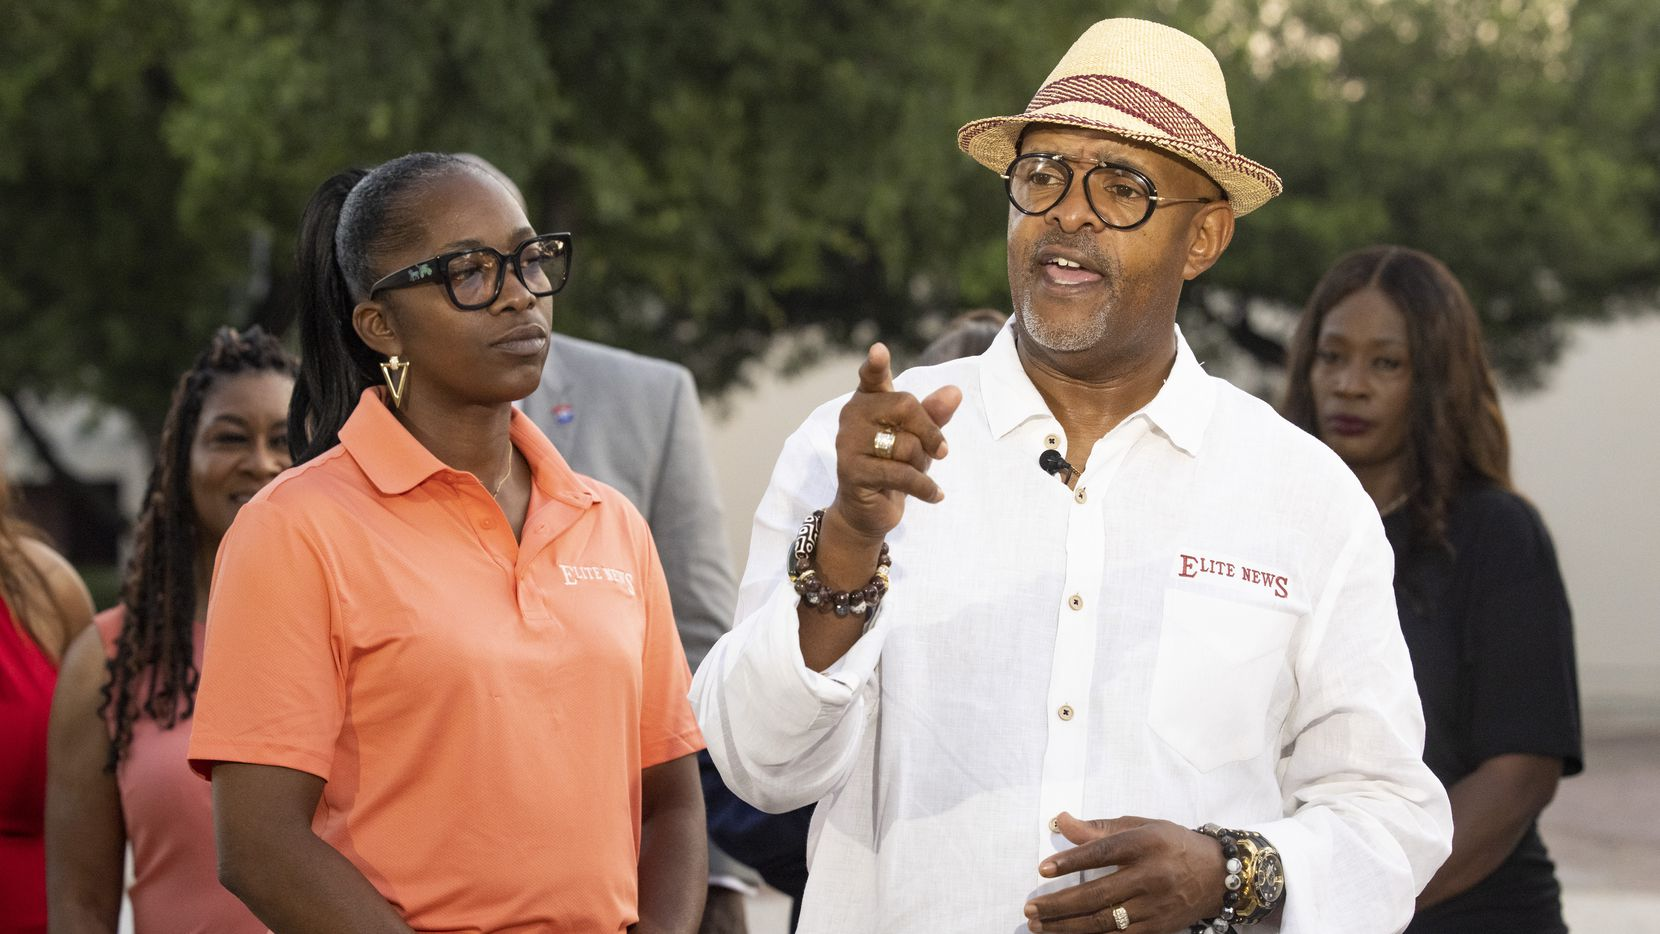 (From right) Darryl E. Blair, son of William Blair Jr., and wife Sherry Blair talk to a reporter about the Negro League Baseball exhibit on Friday, June 18, 2021, during a media preview at Fair Park in Dallas. The exhibit opens Saturday as part of the Juneteenth Celebration in Fair Park. (Juan Figueroa/The Dallas Morning News)